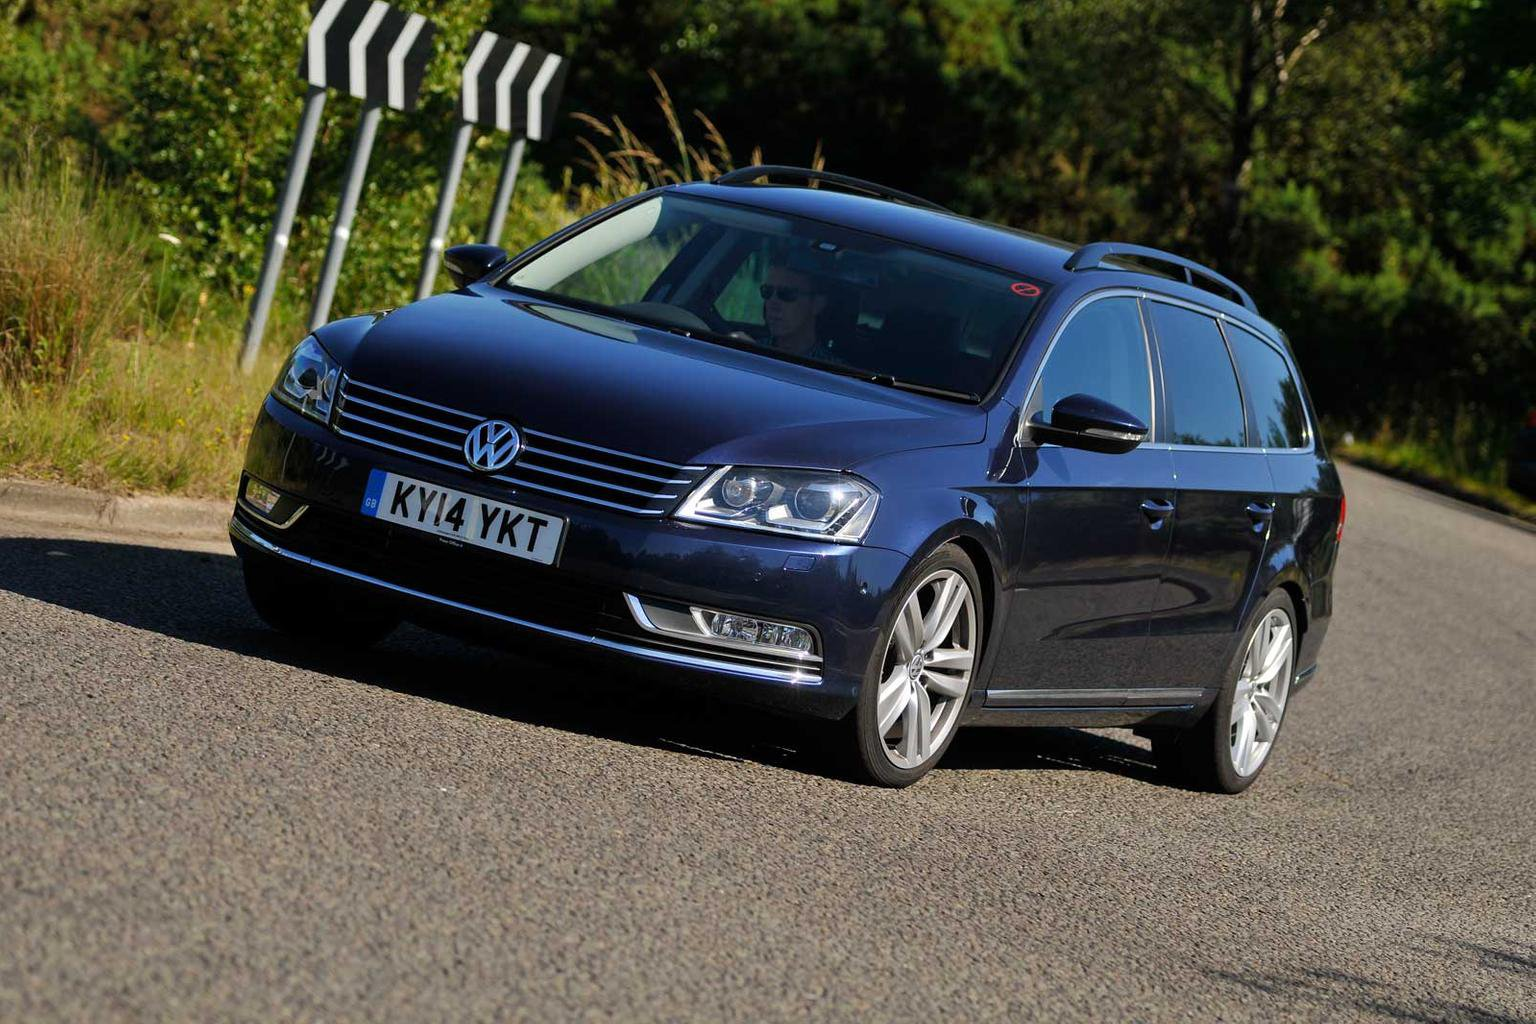 2014 Volkswagen Passat Executive Style review | What Car?